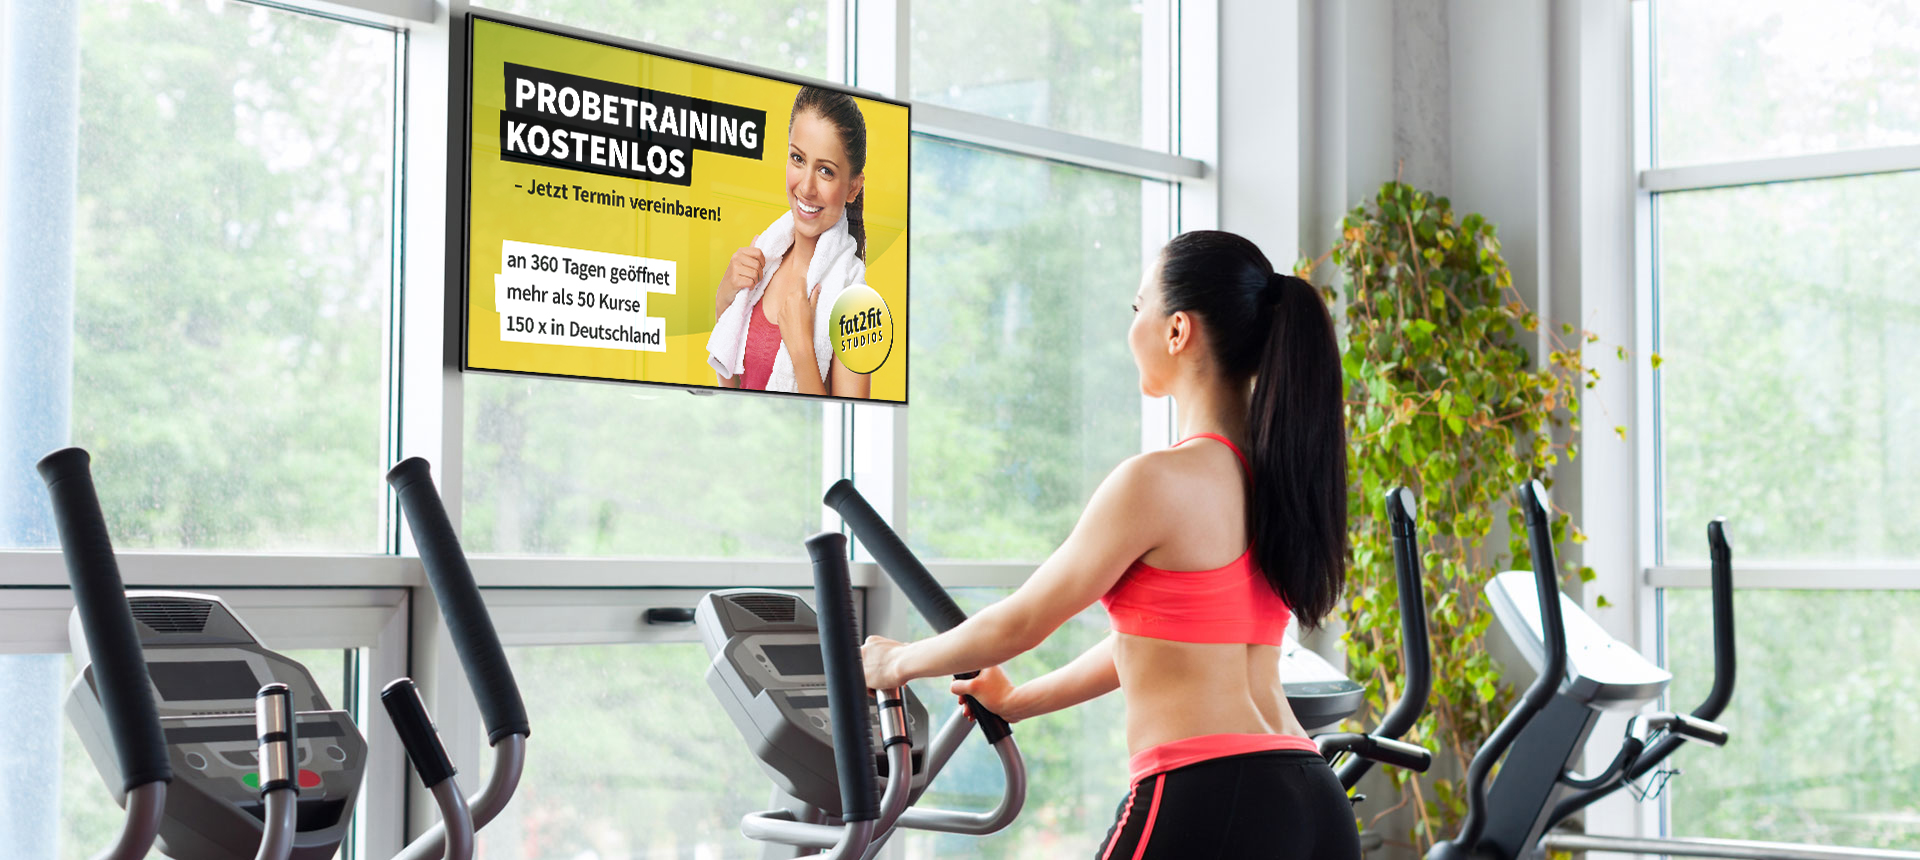 viewneo Digital-Signage Fitness-Studio